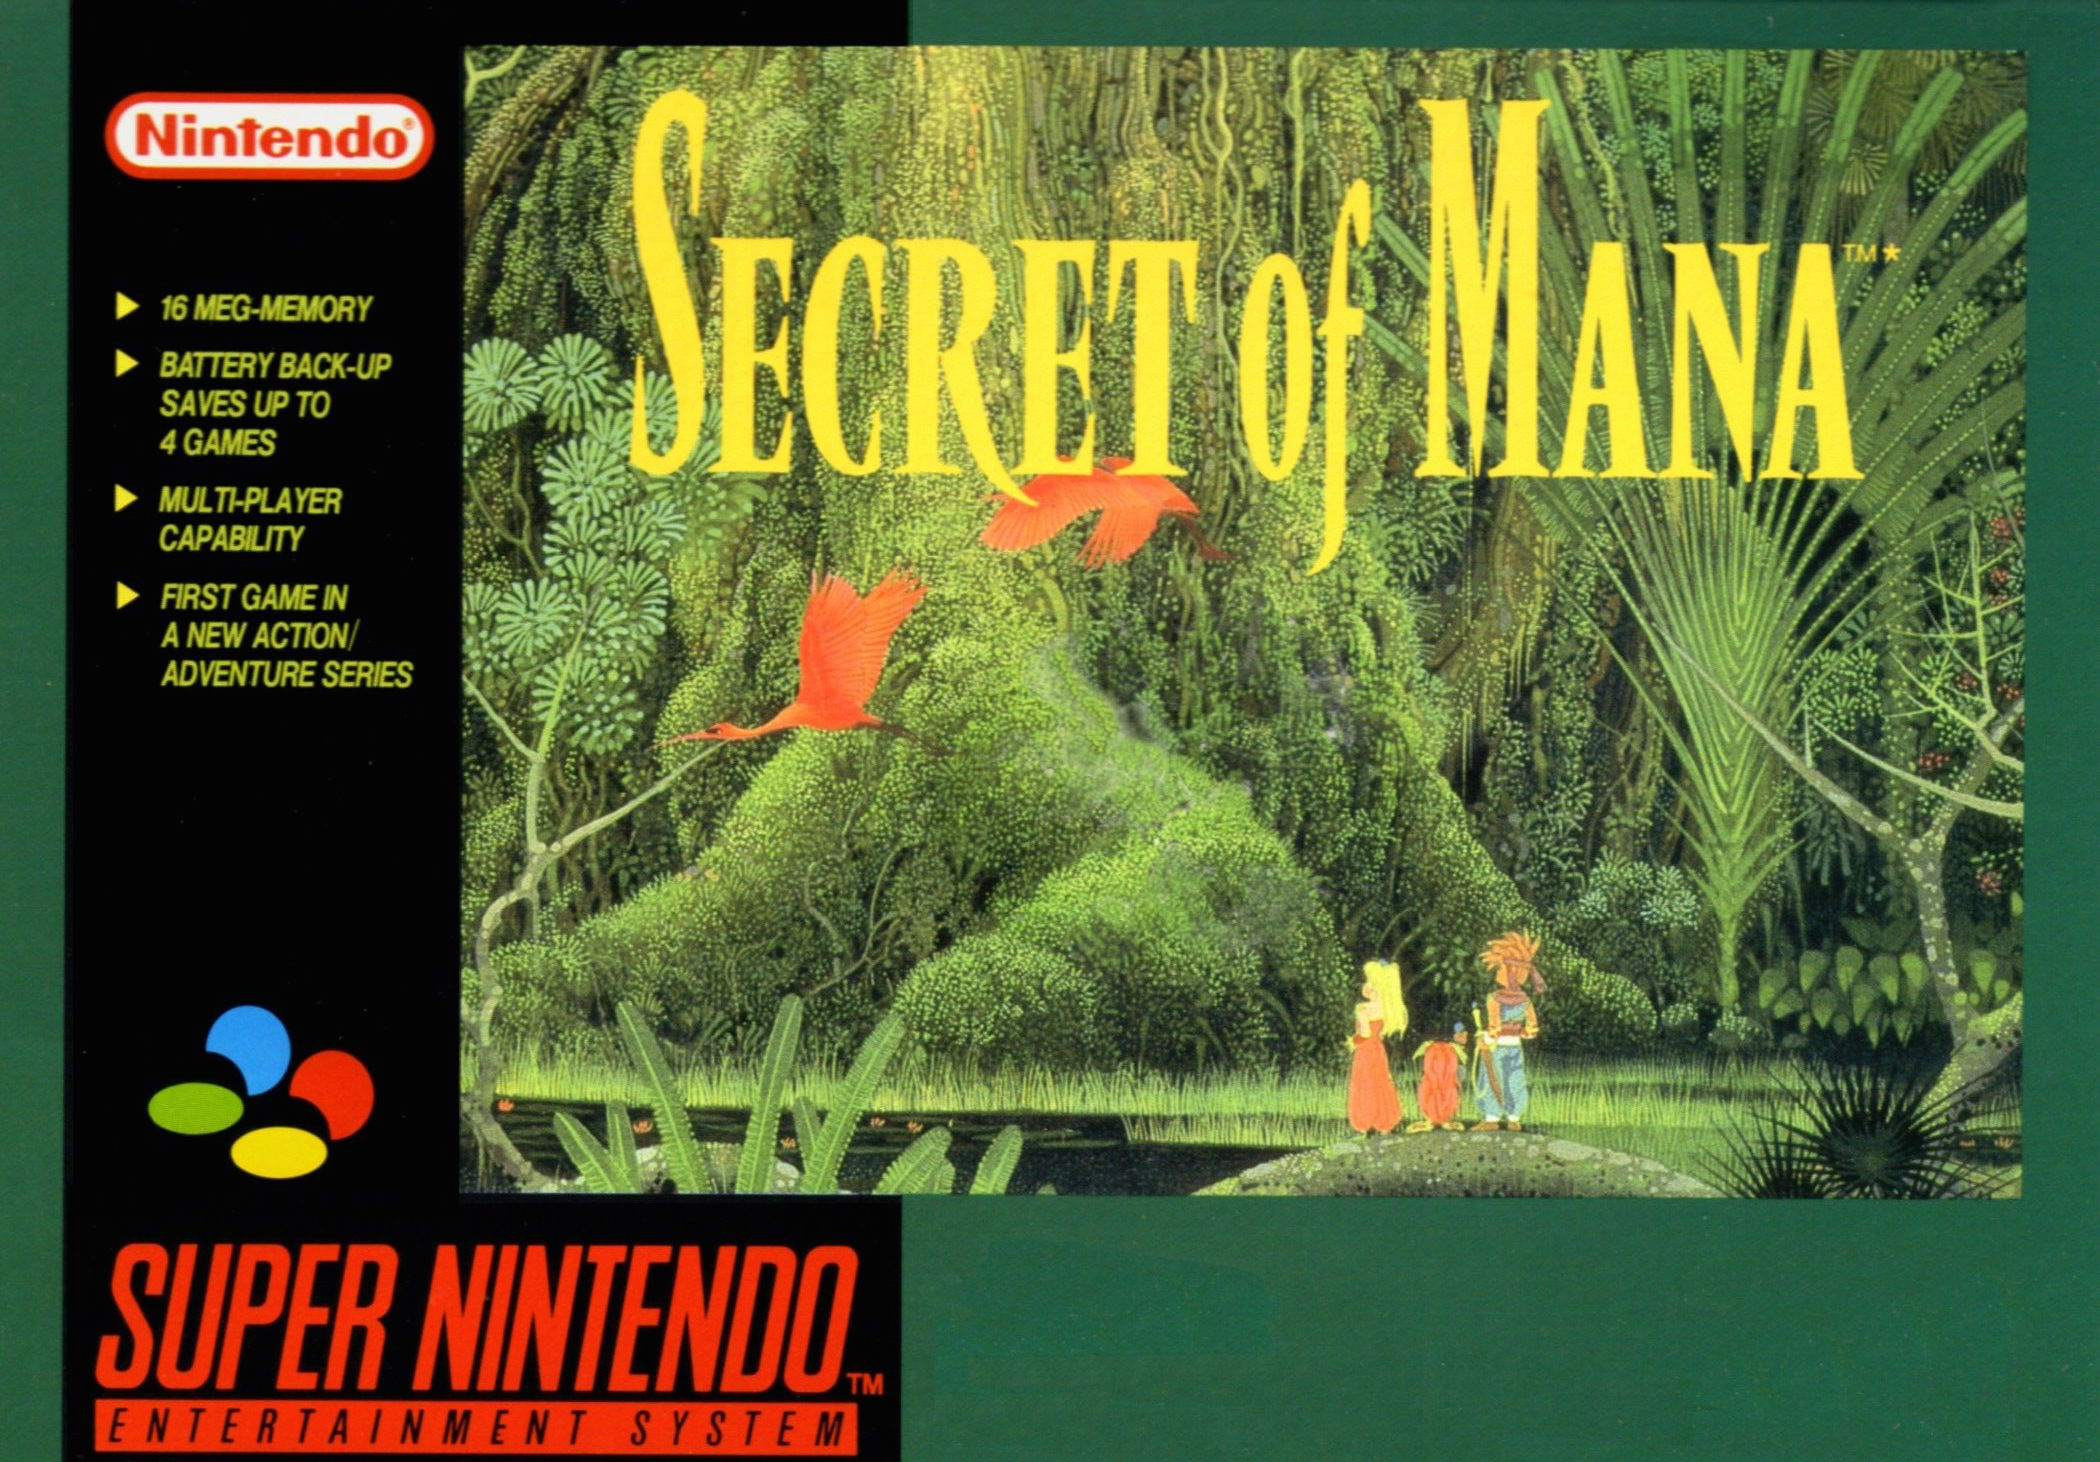 Snes Classic Secret Of Mana Now Available For Android